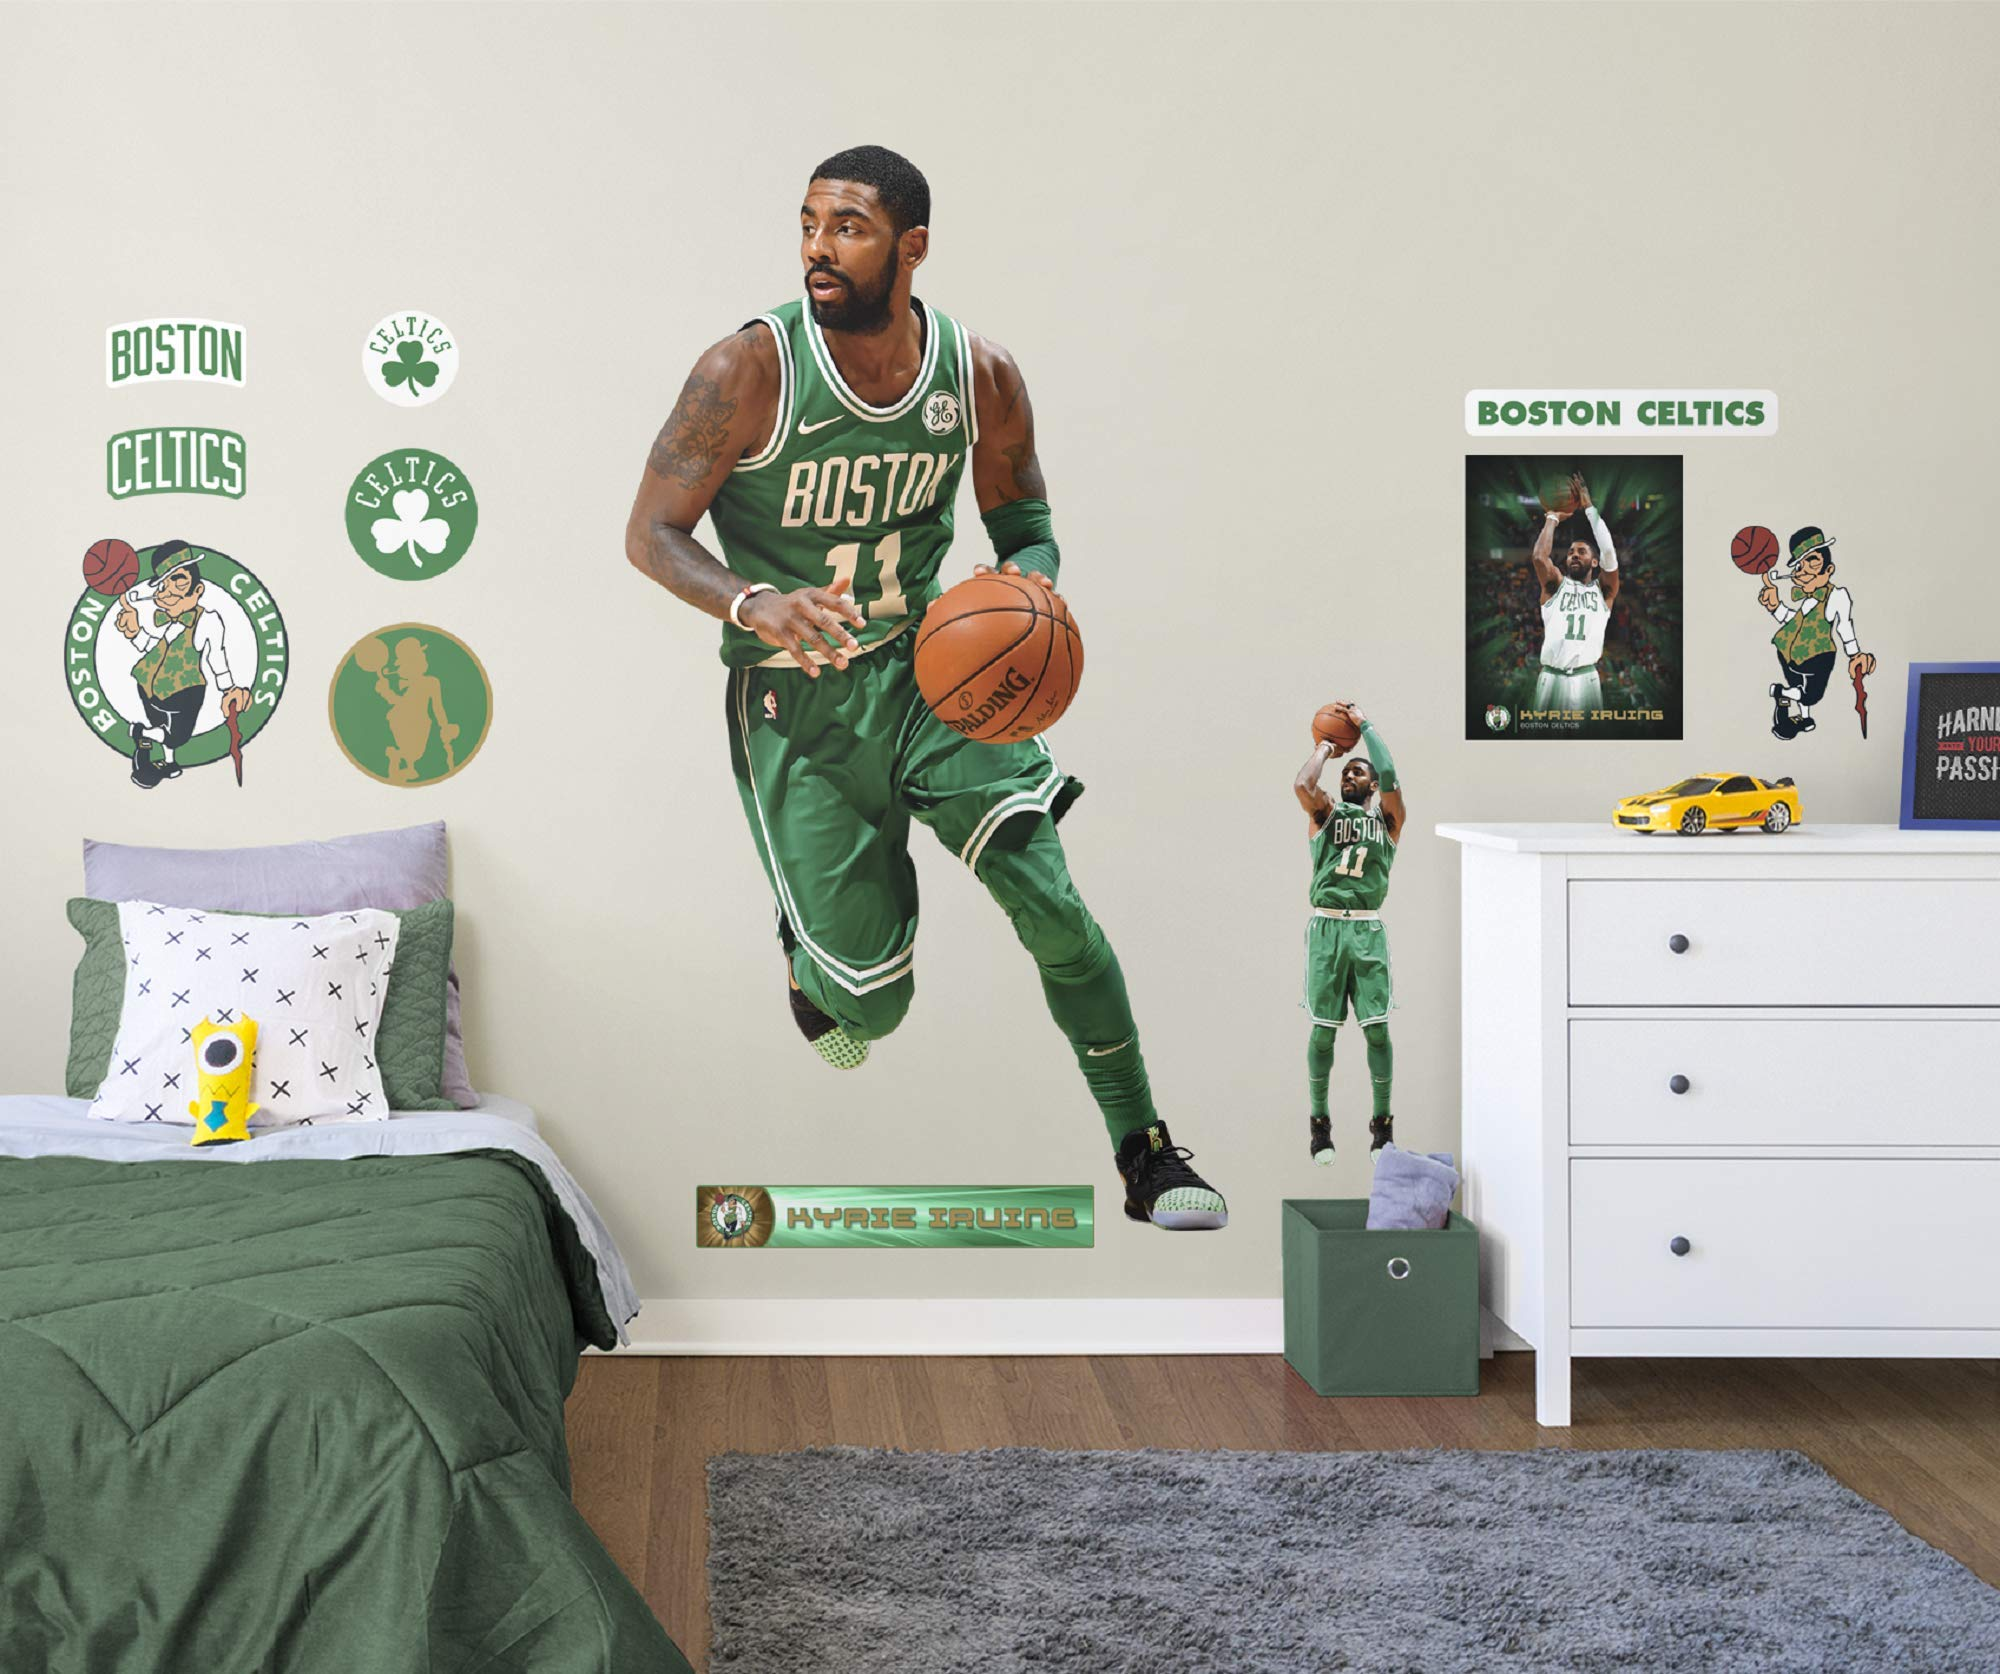 Fathead NBA Boston Celtics Kyrie Irving Kyrie Irving- Officially Licensed Removable Wall Decal, Multicolor, Life-Size by FATHEAD